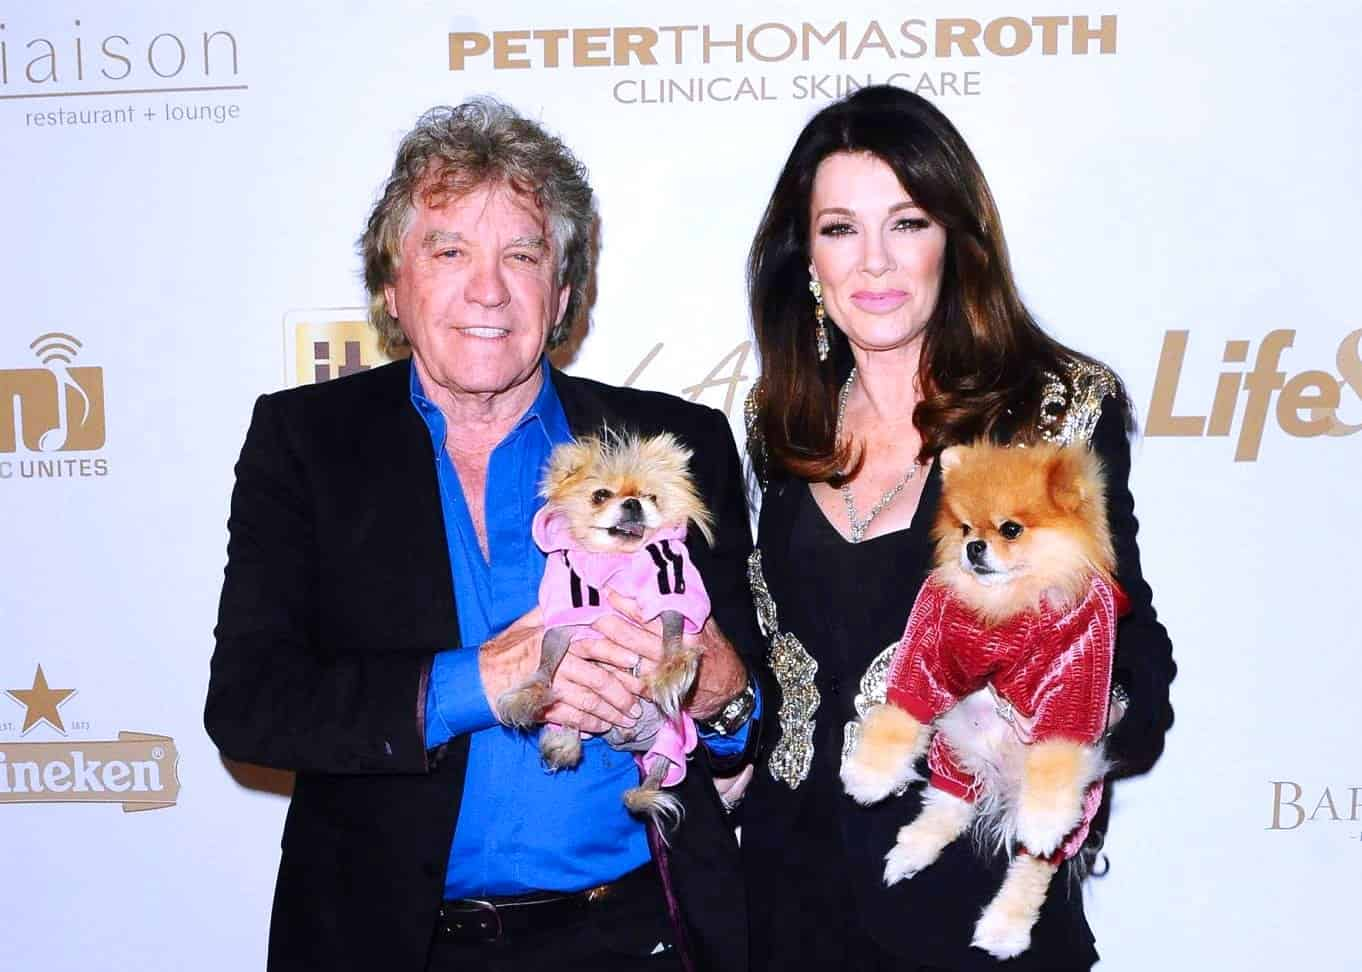 PHOTO: Lisa Vanderpump Shares Sweet Throwback Wedding Photo to Celebrate 37th Anniversary With Husband Ken Todd, Which RHOBH Cast Member Commented?